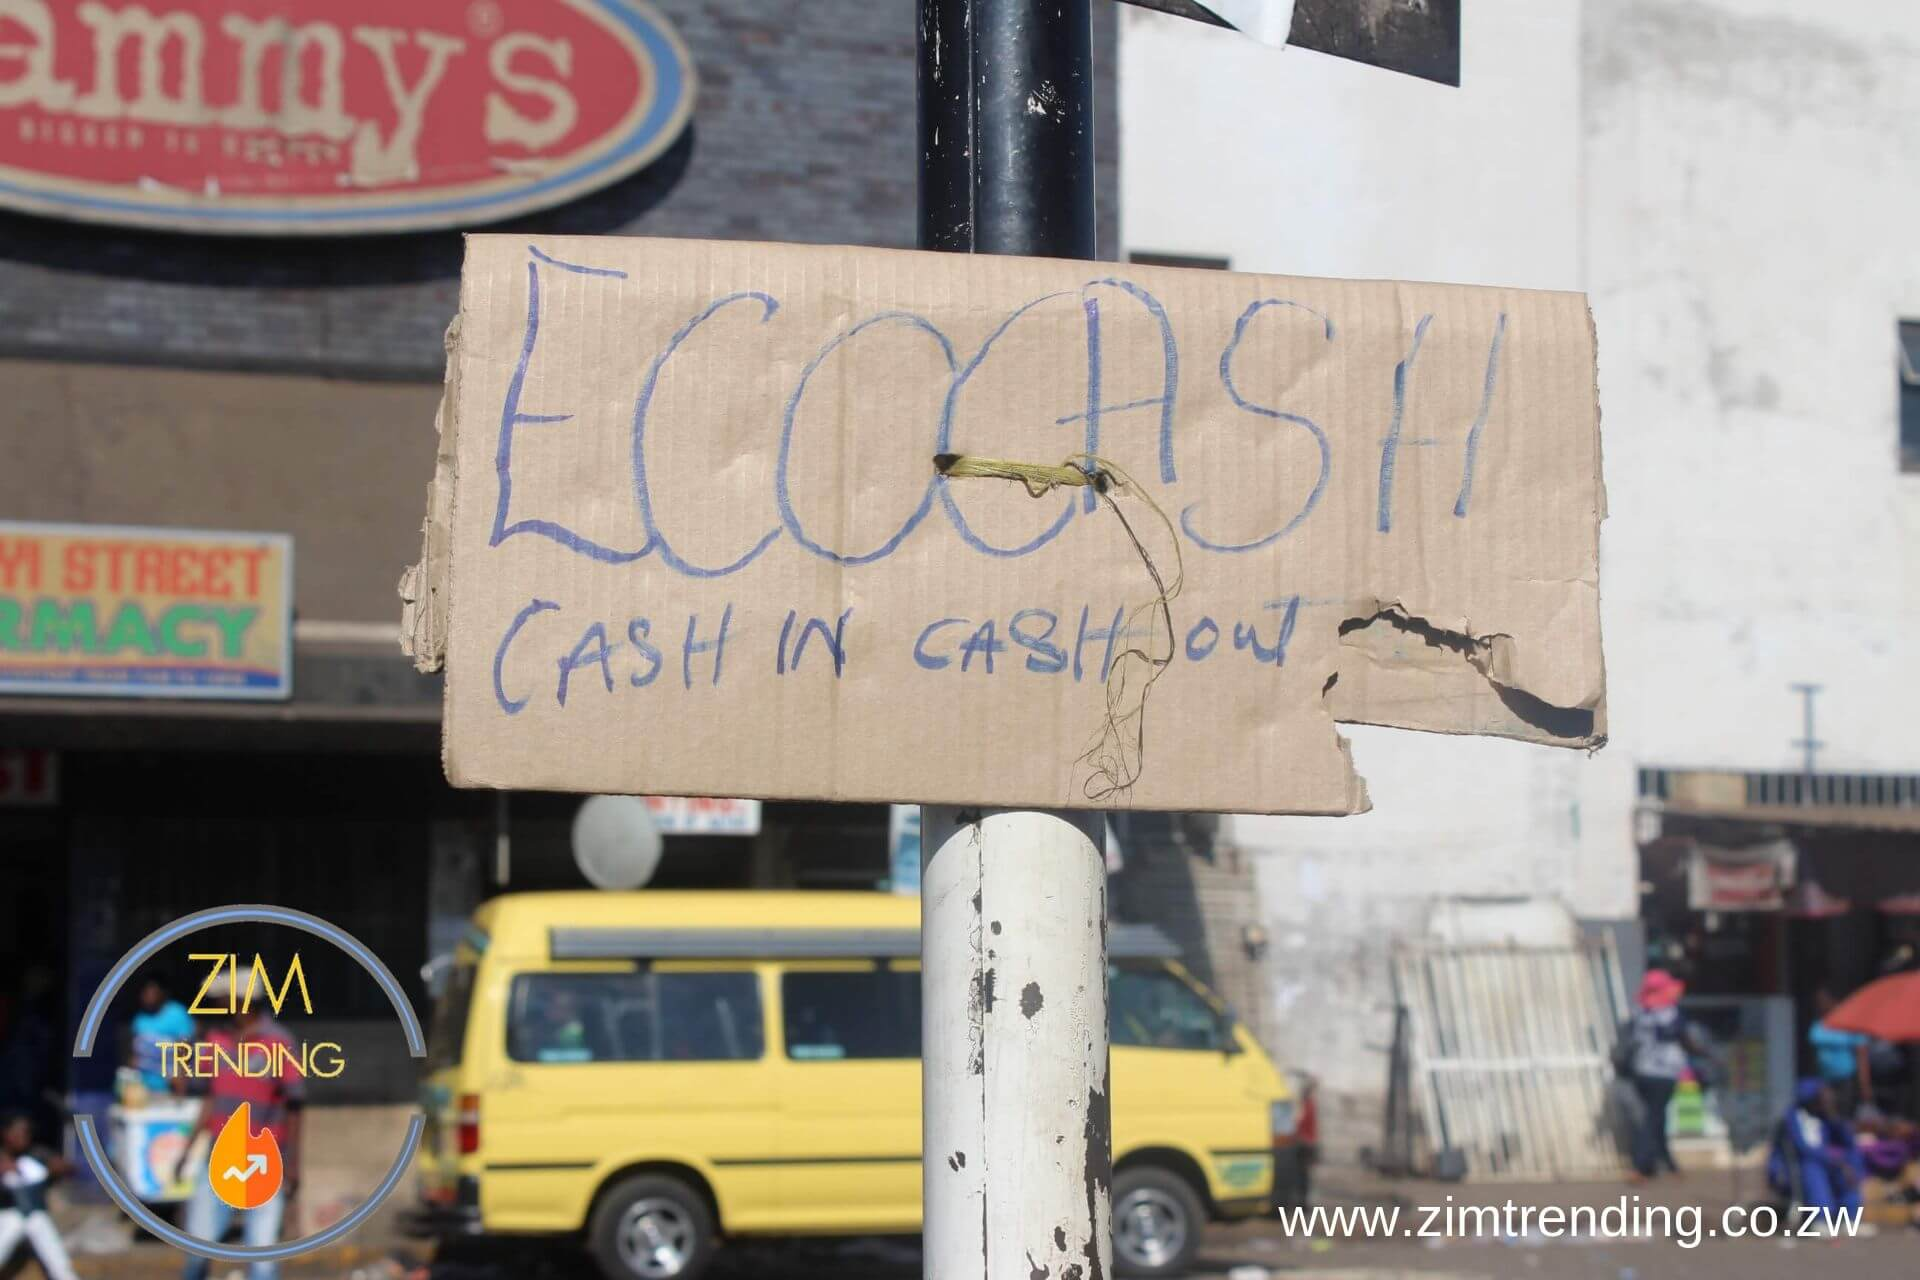 Ecocash agents ripping customers